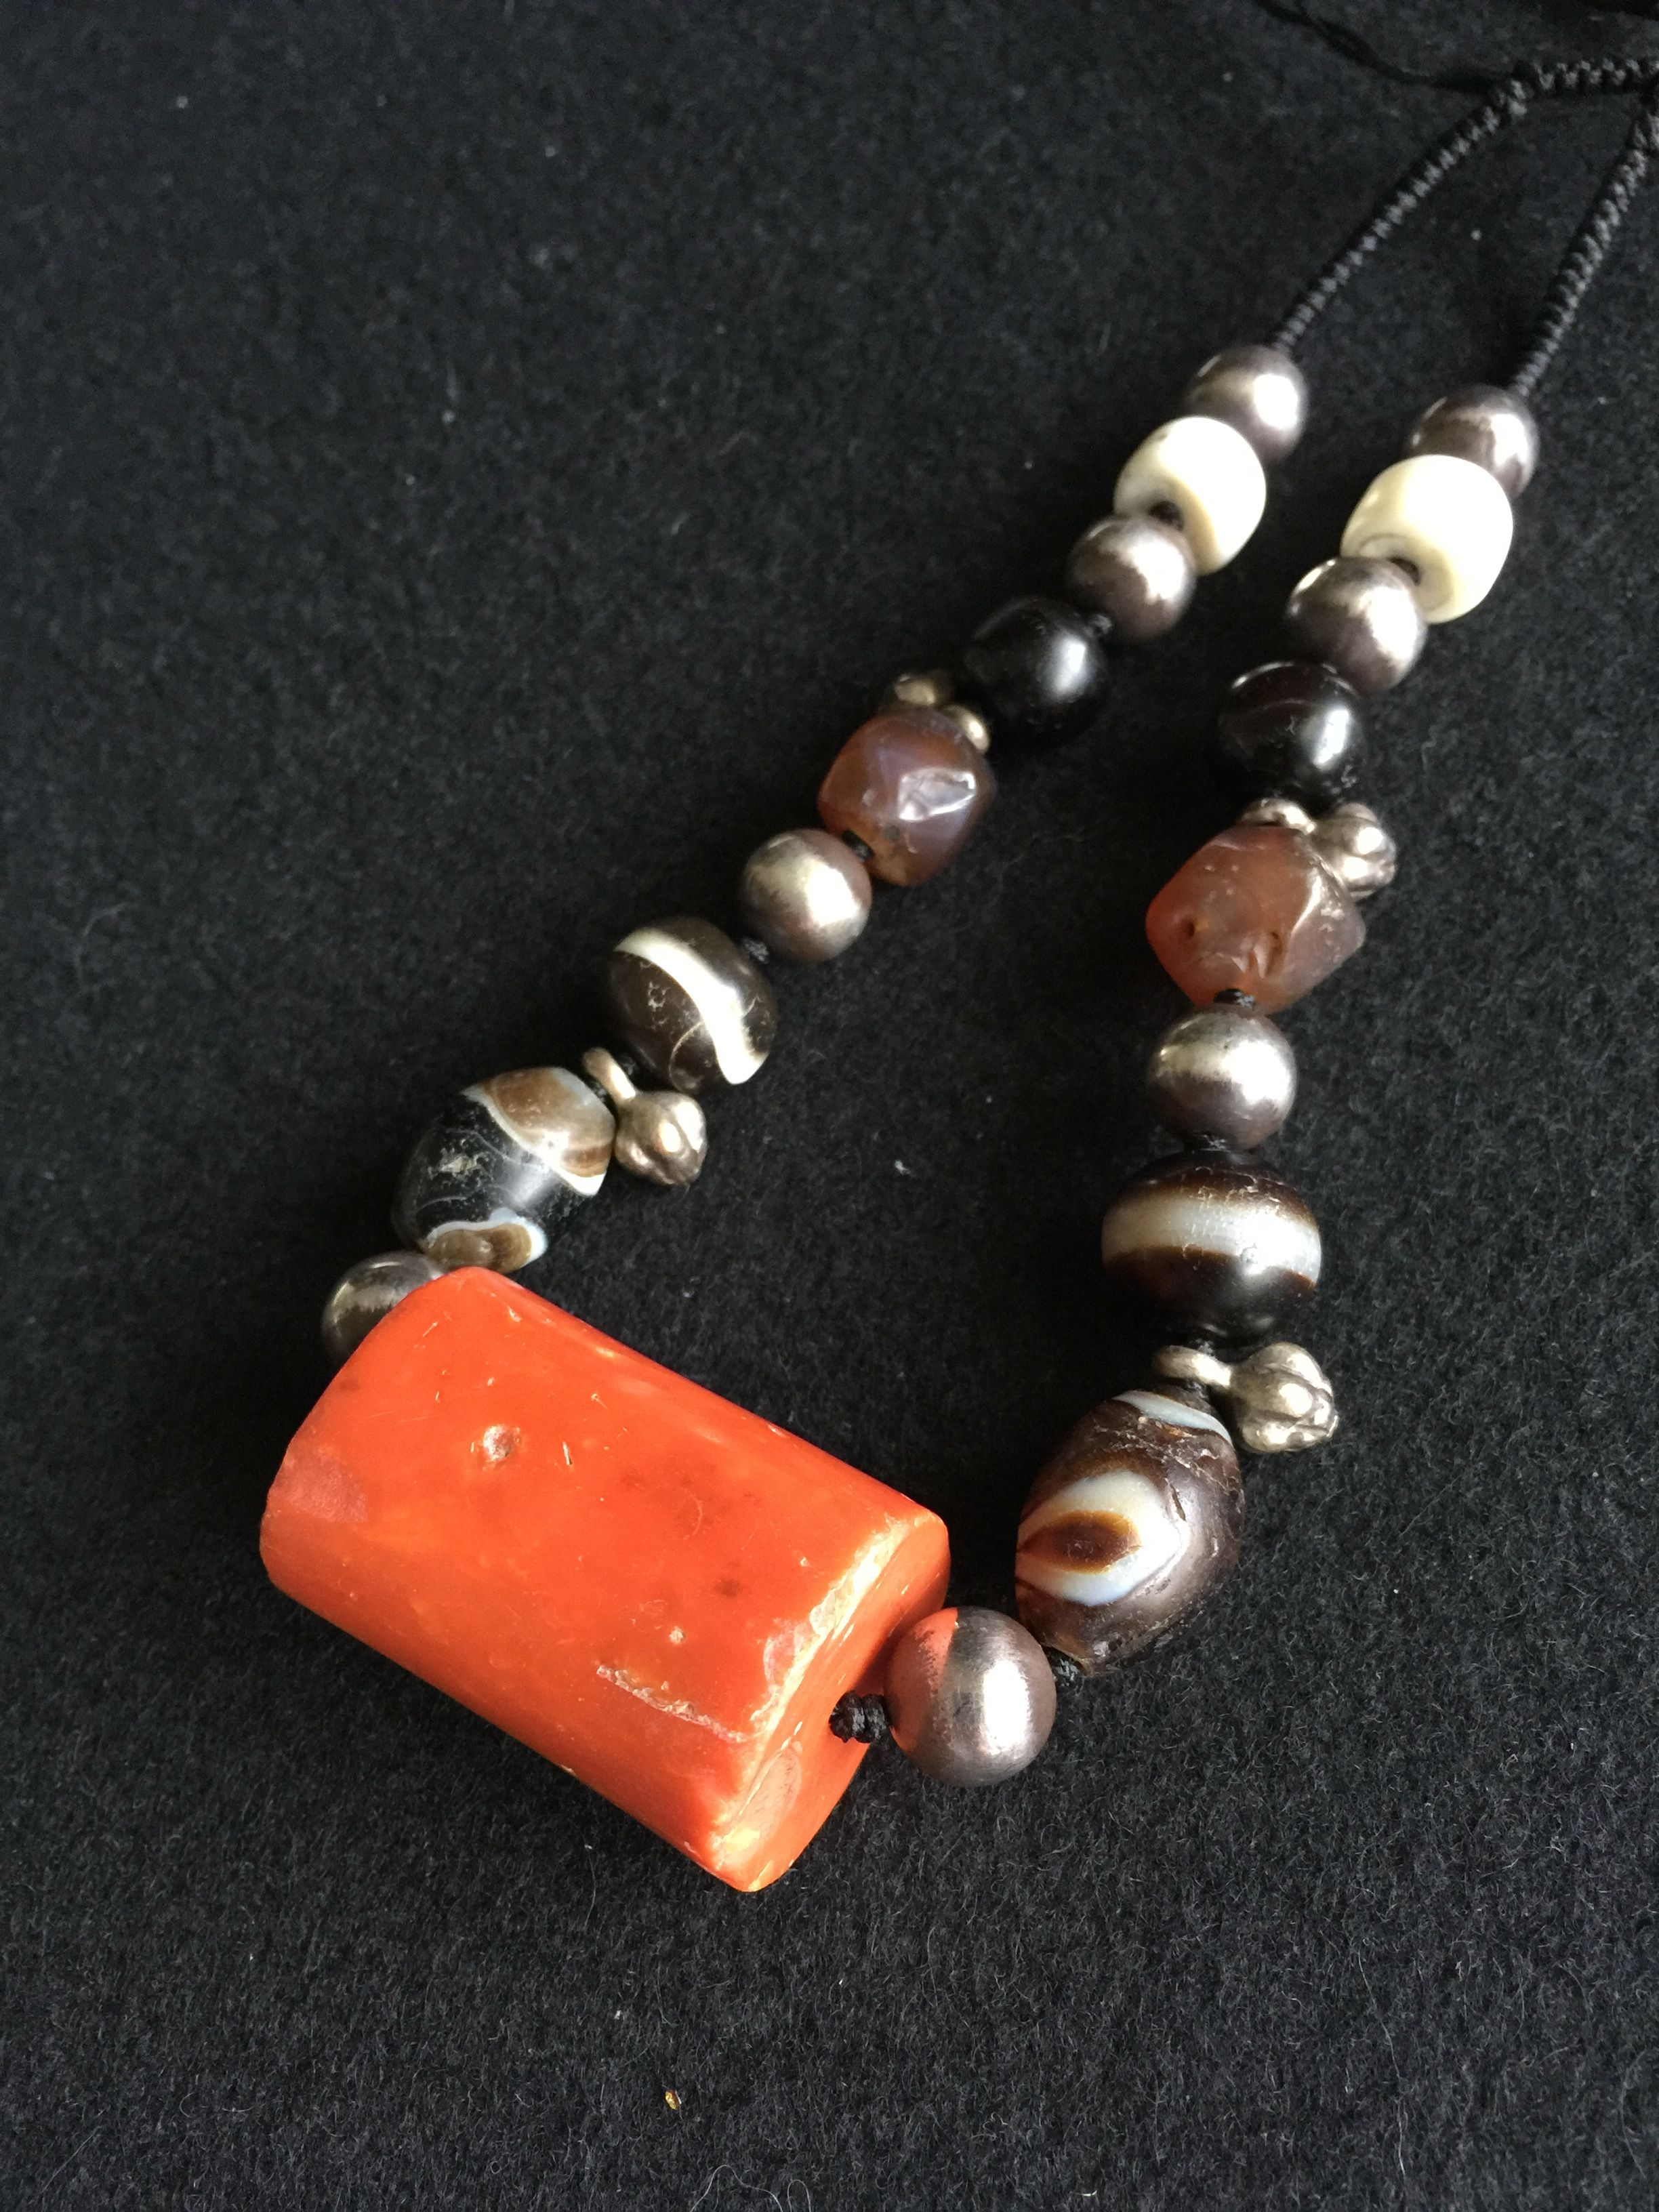 Ancient cylindrical coral pendant, agate, silver and conch shell bead chain